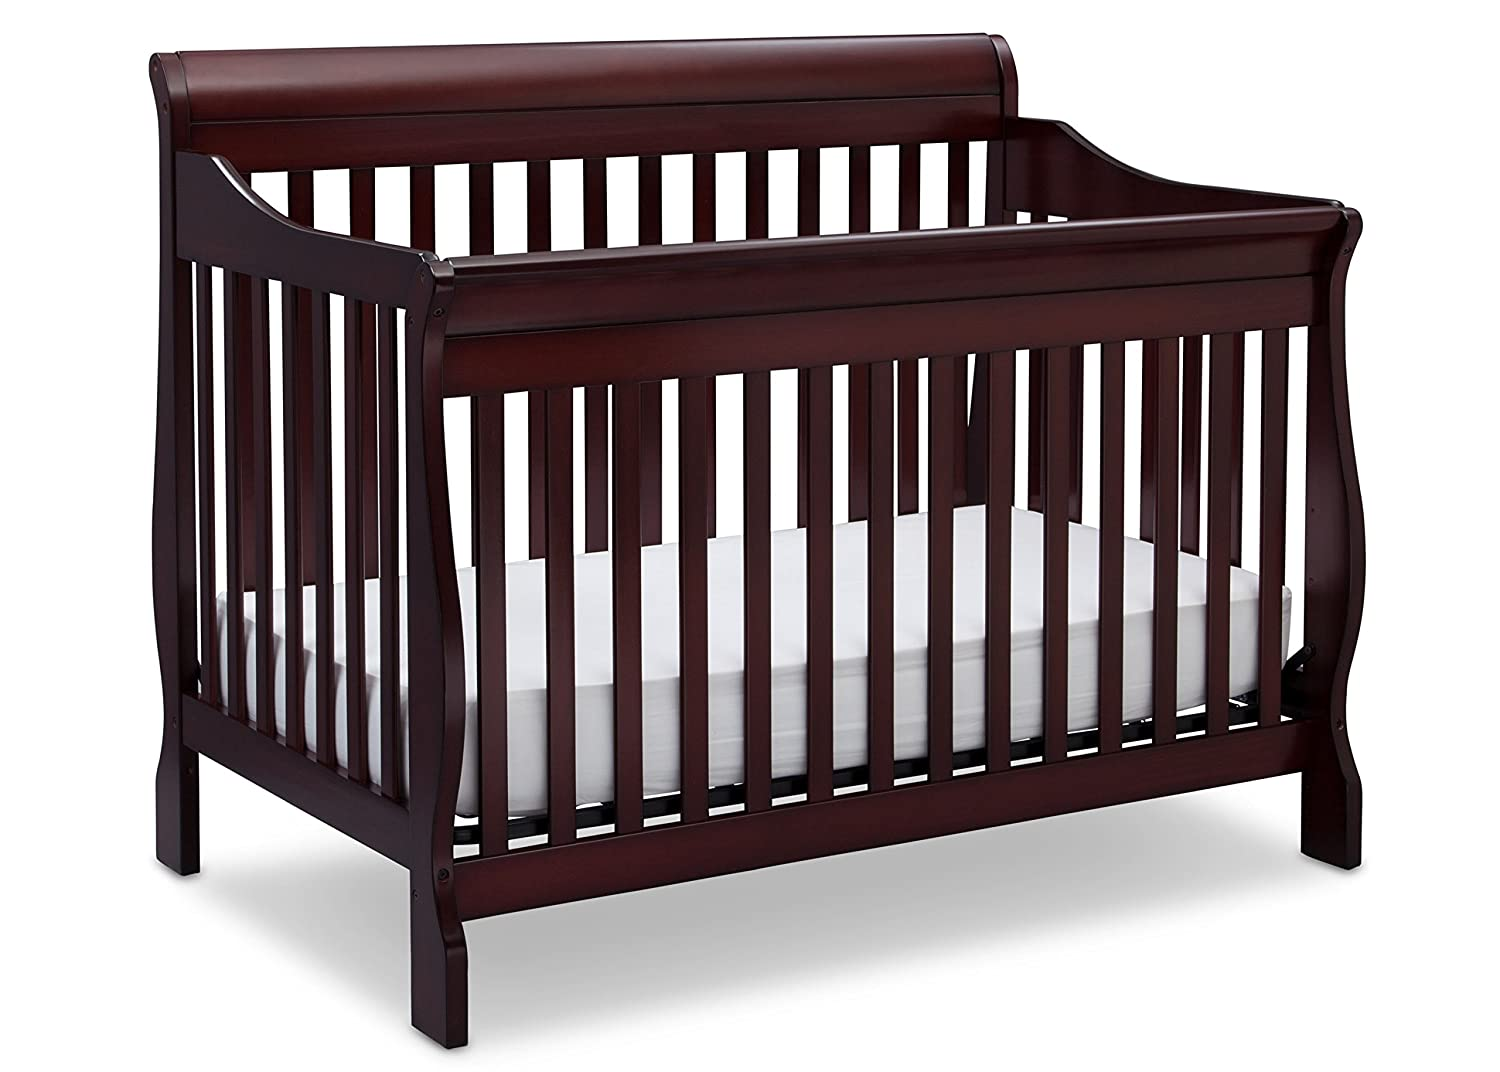 Amazoncom Delta Children Canton 4 In 1 Convertible Baby Crib